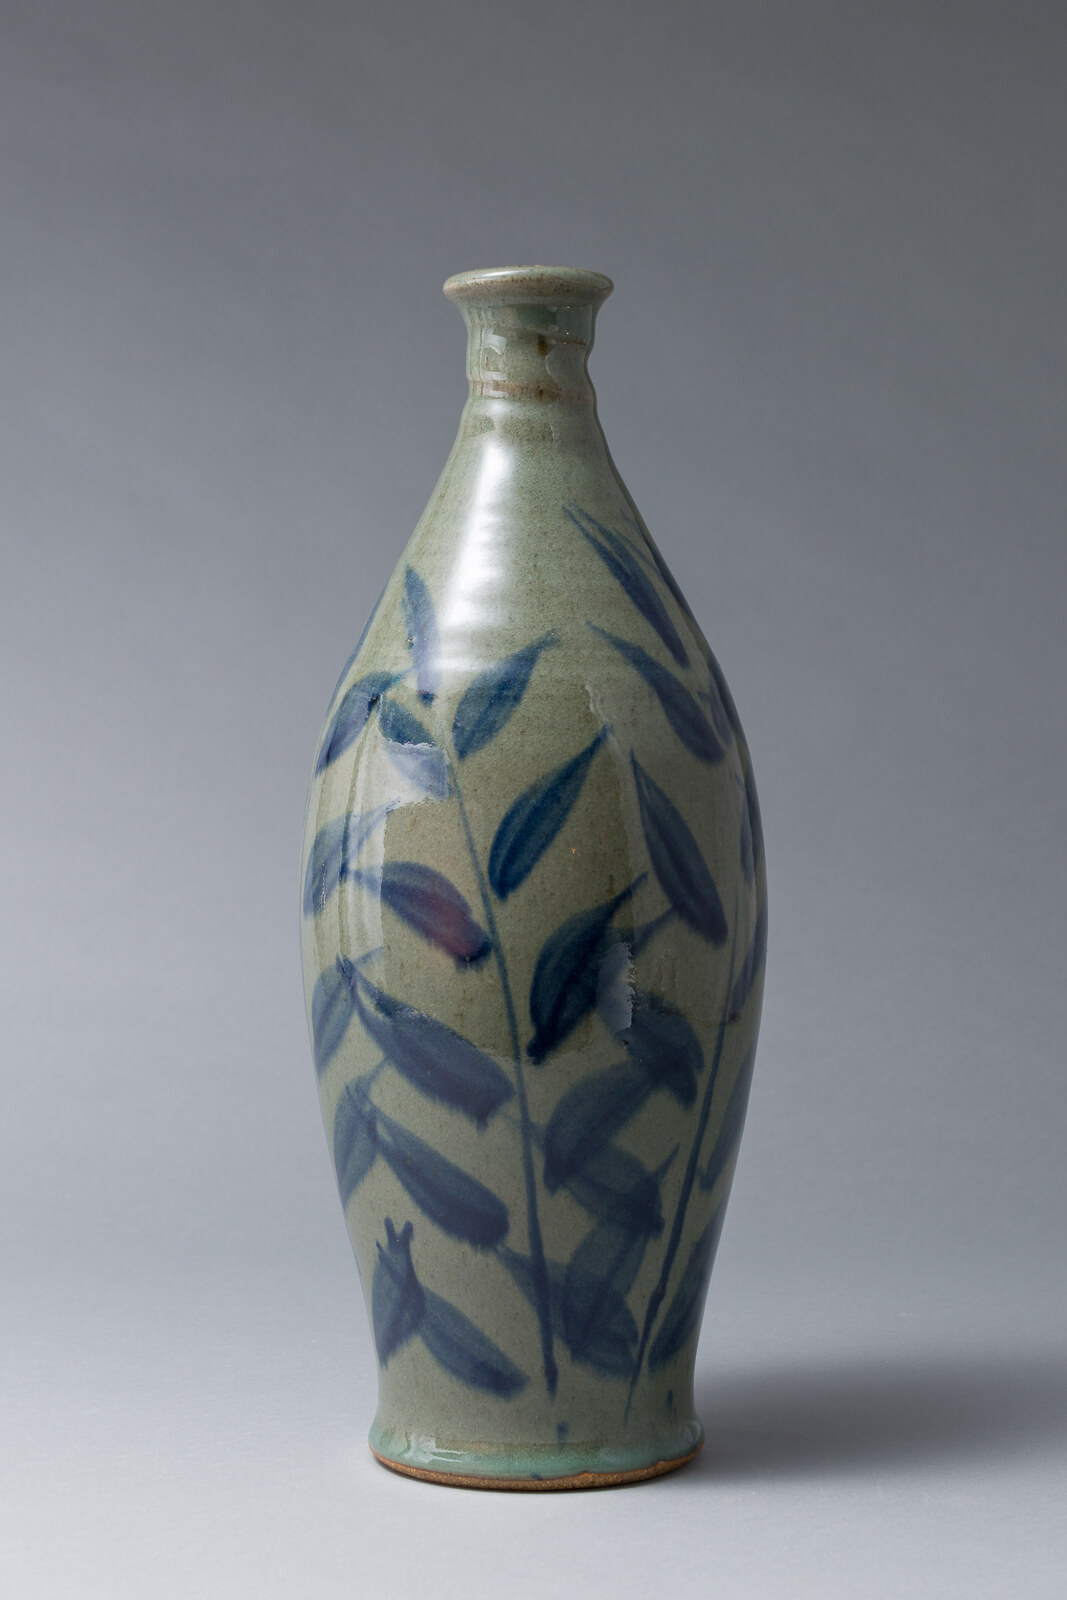 Pecan leaf bottle, stoneware with cobalt brushwork